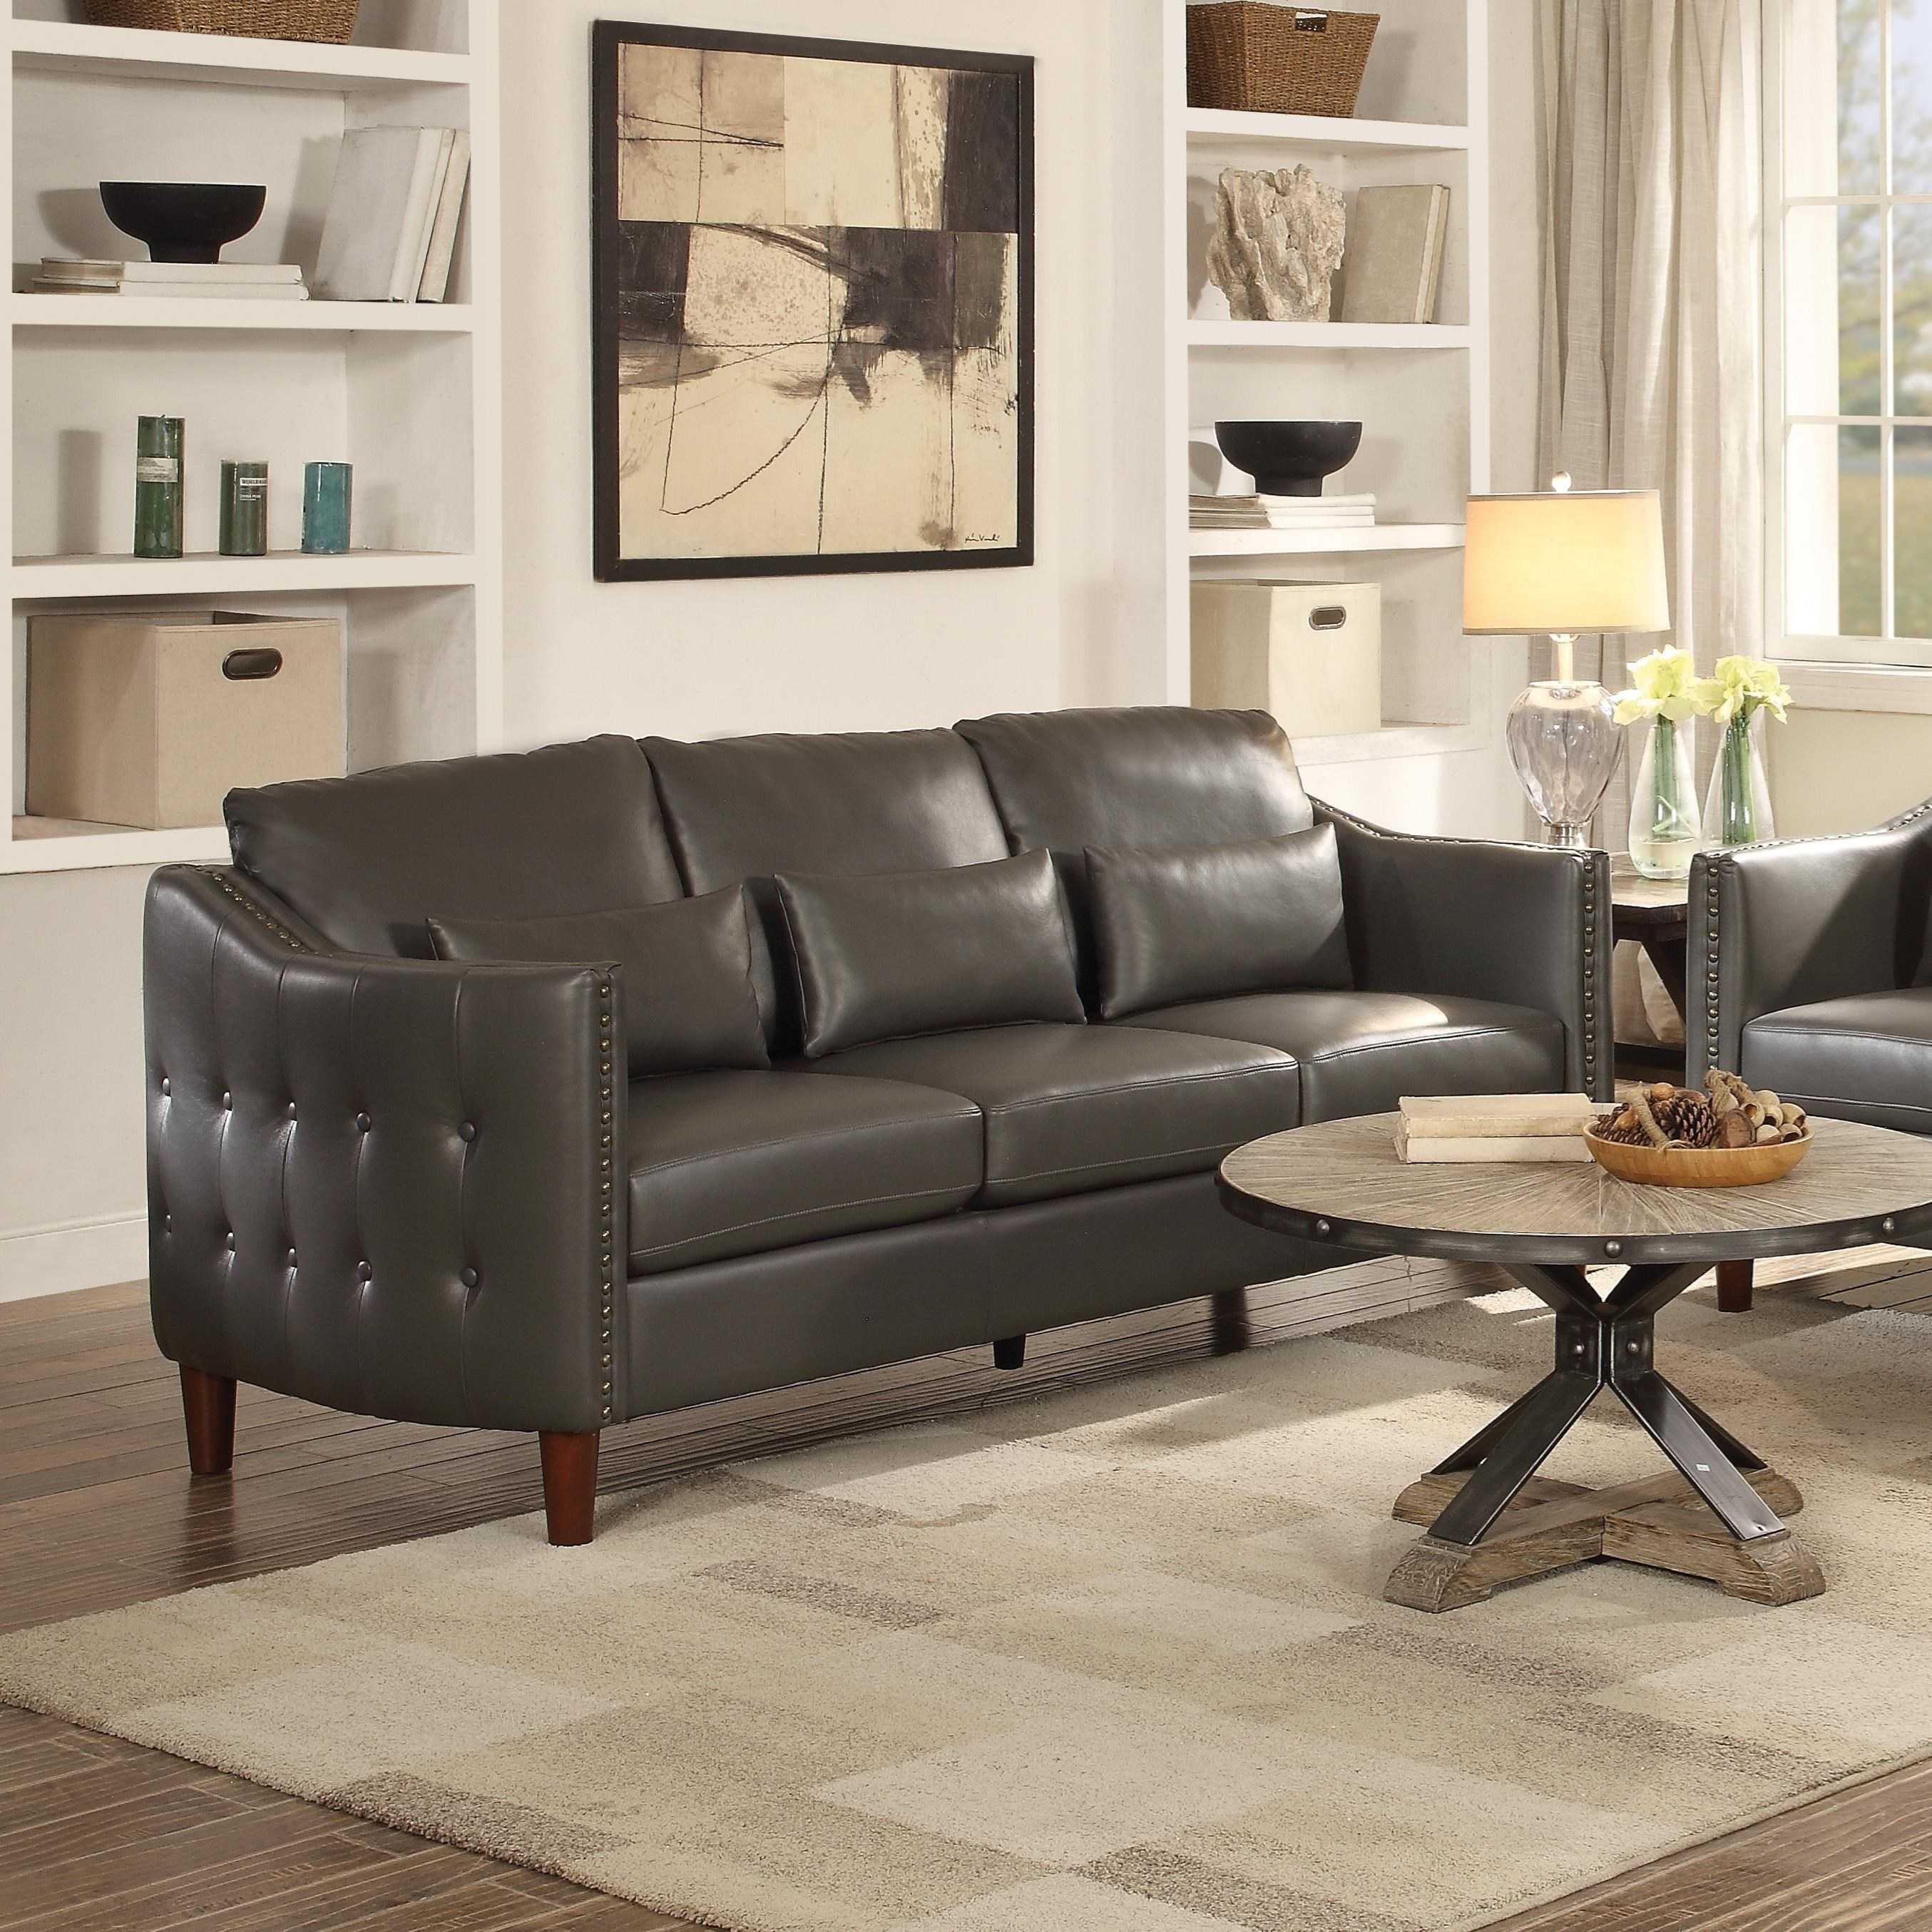 Coaster Braxten Sofa With Transitional Style Rife 39 S Home Furniture Sofas